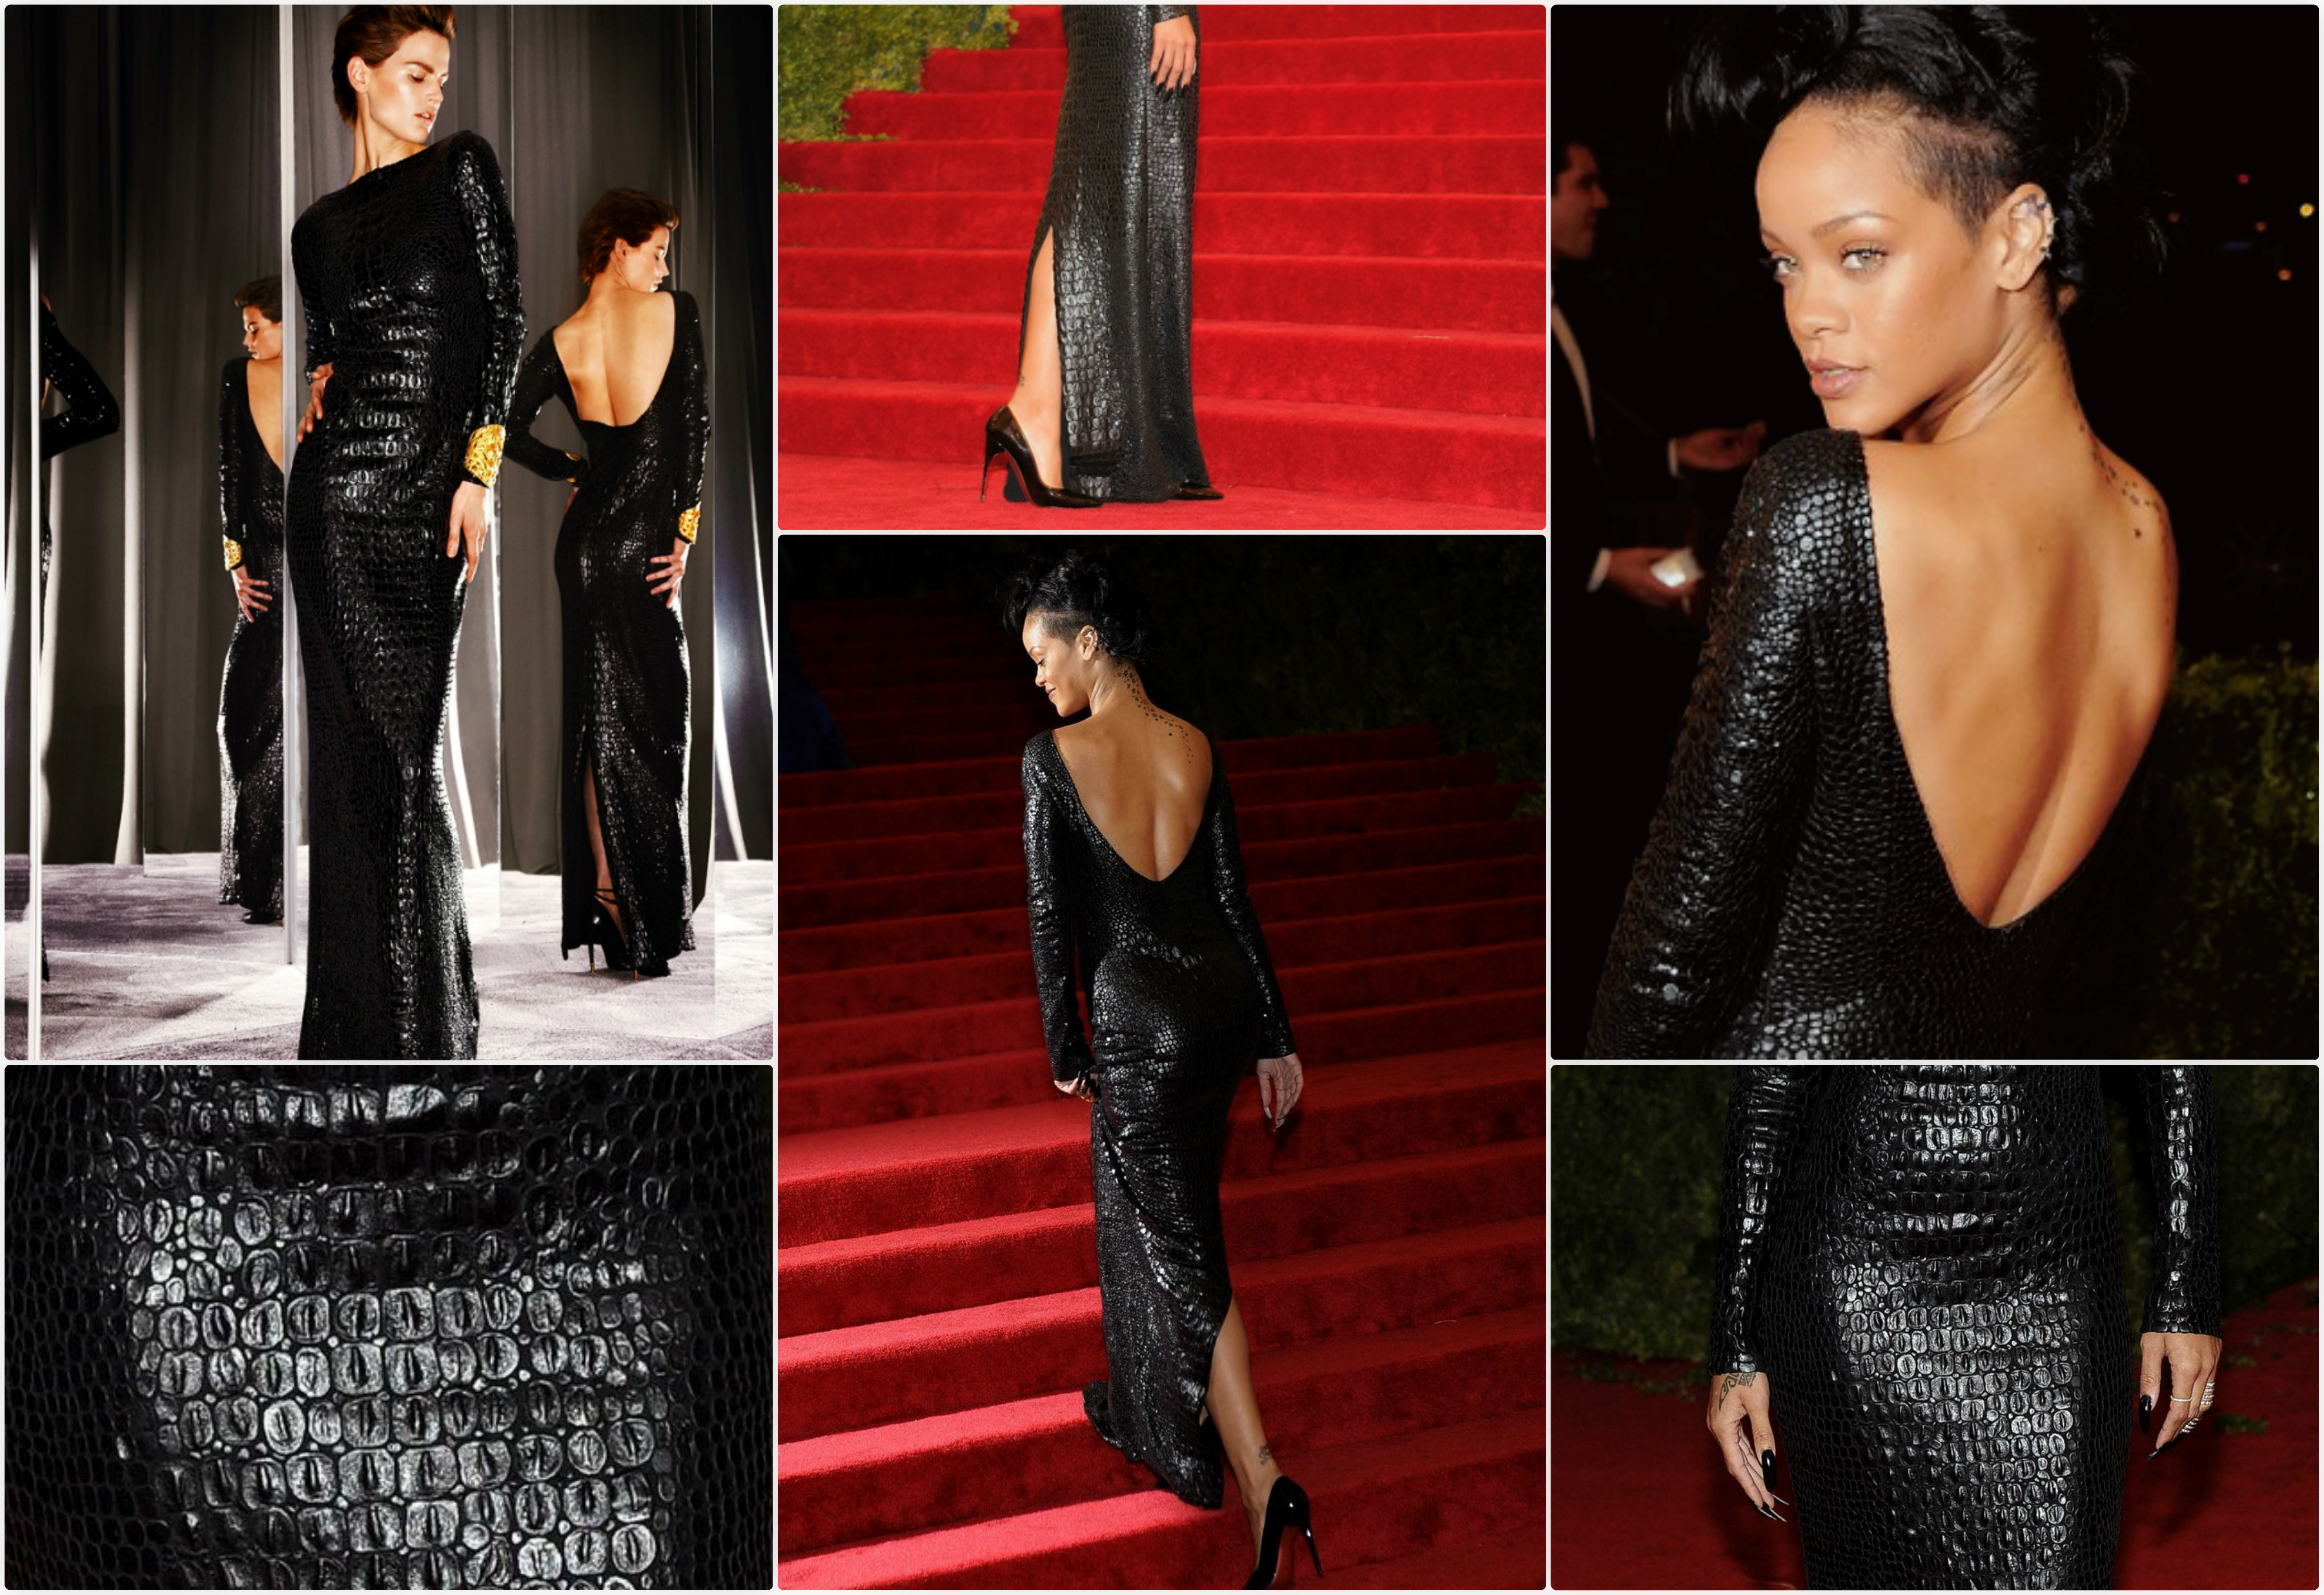 b1f775c63255 Rihanna Wears TOM FORD Autumn Winter 2012 to Met Costume Institute Gala